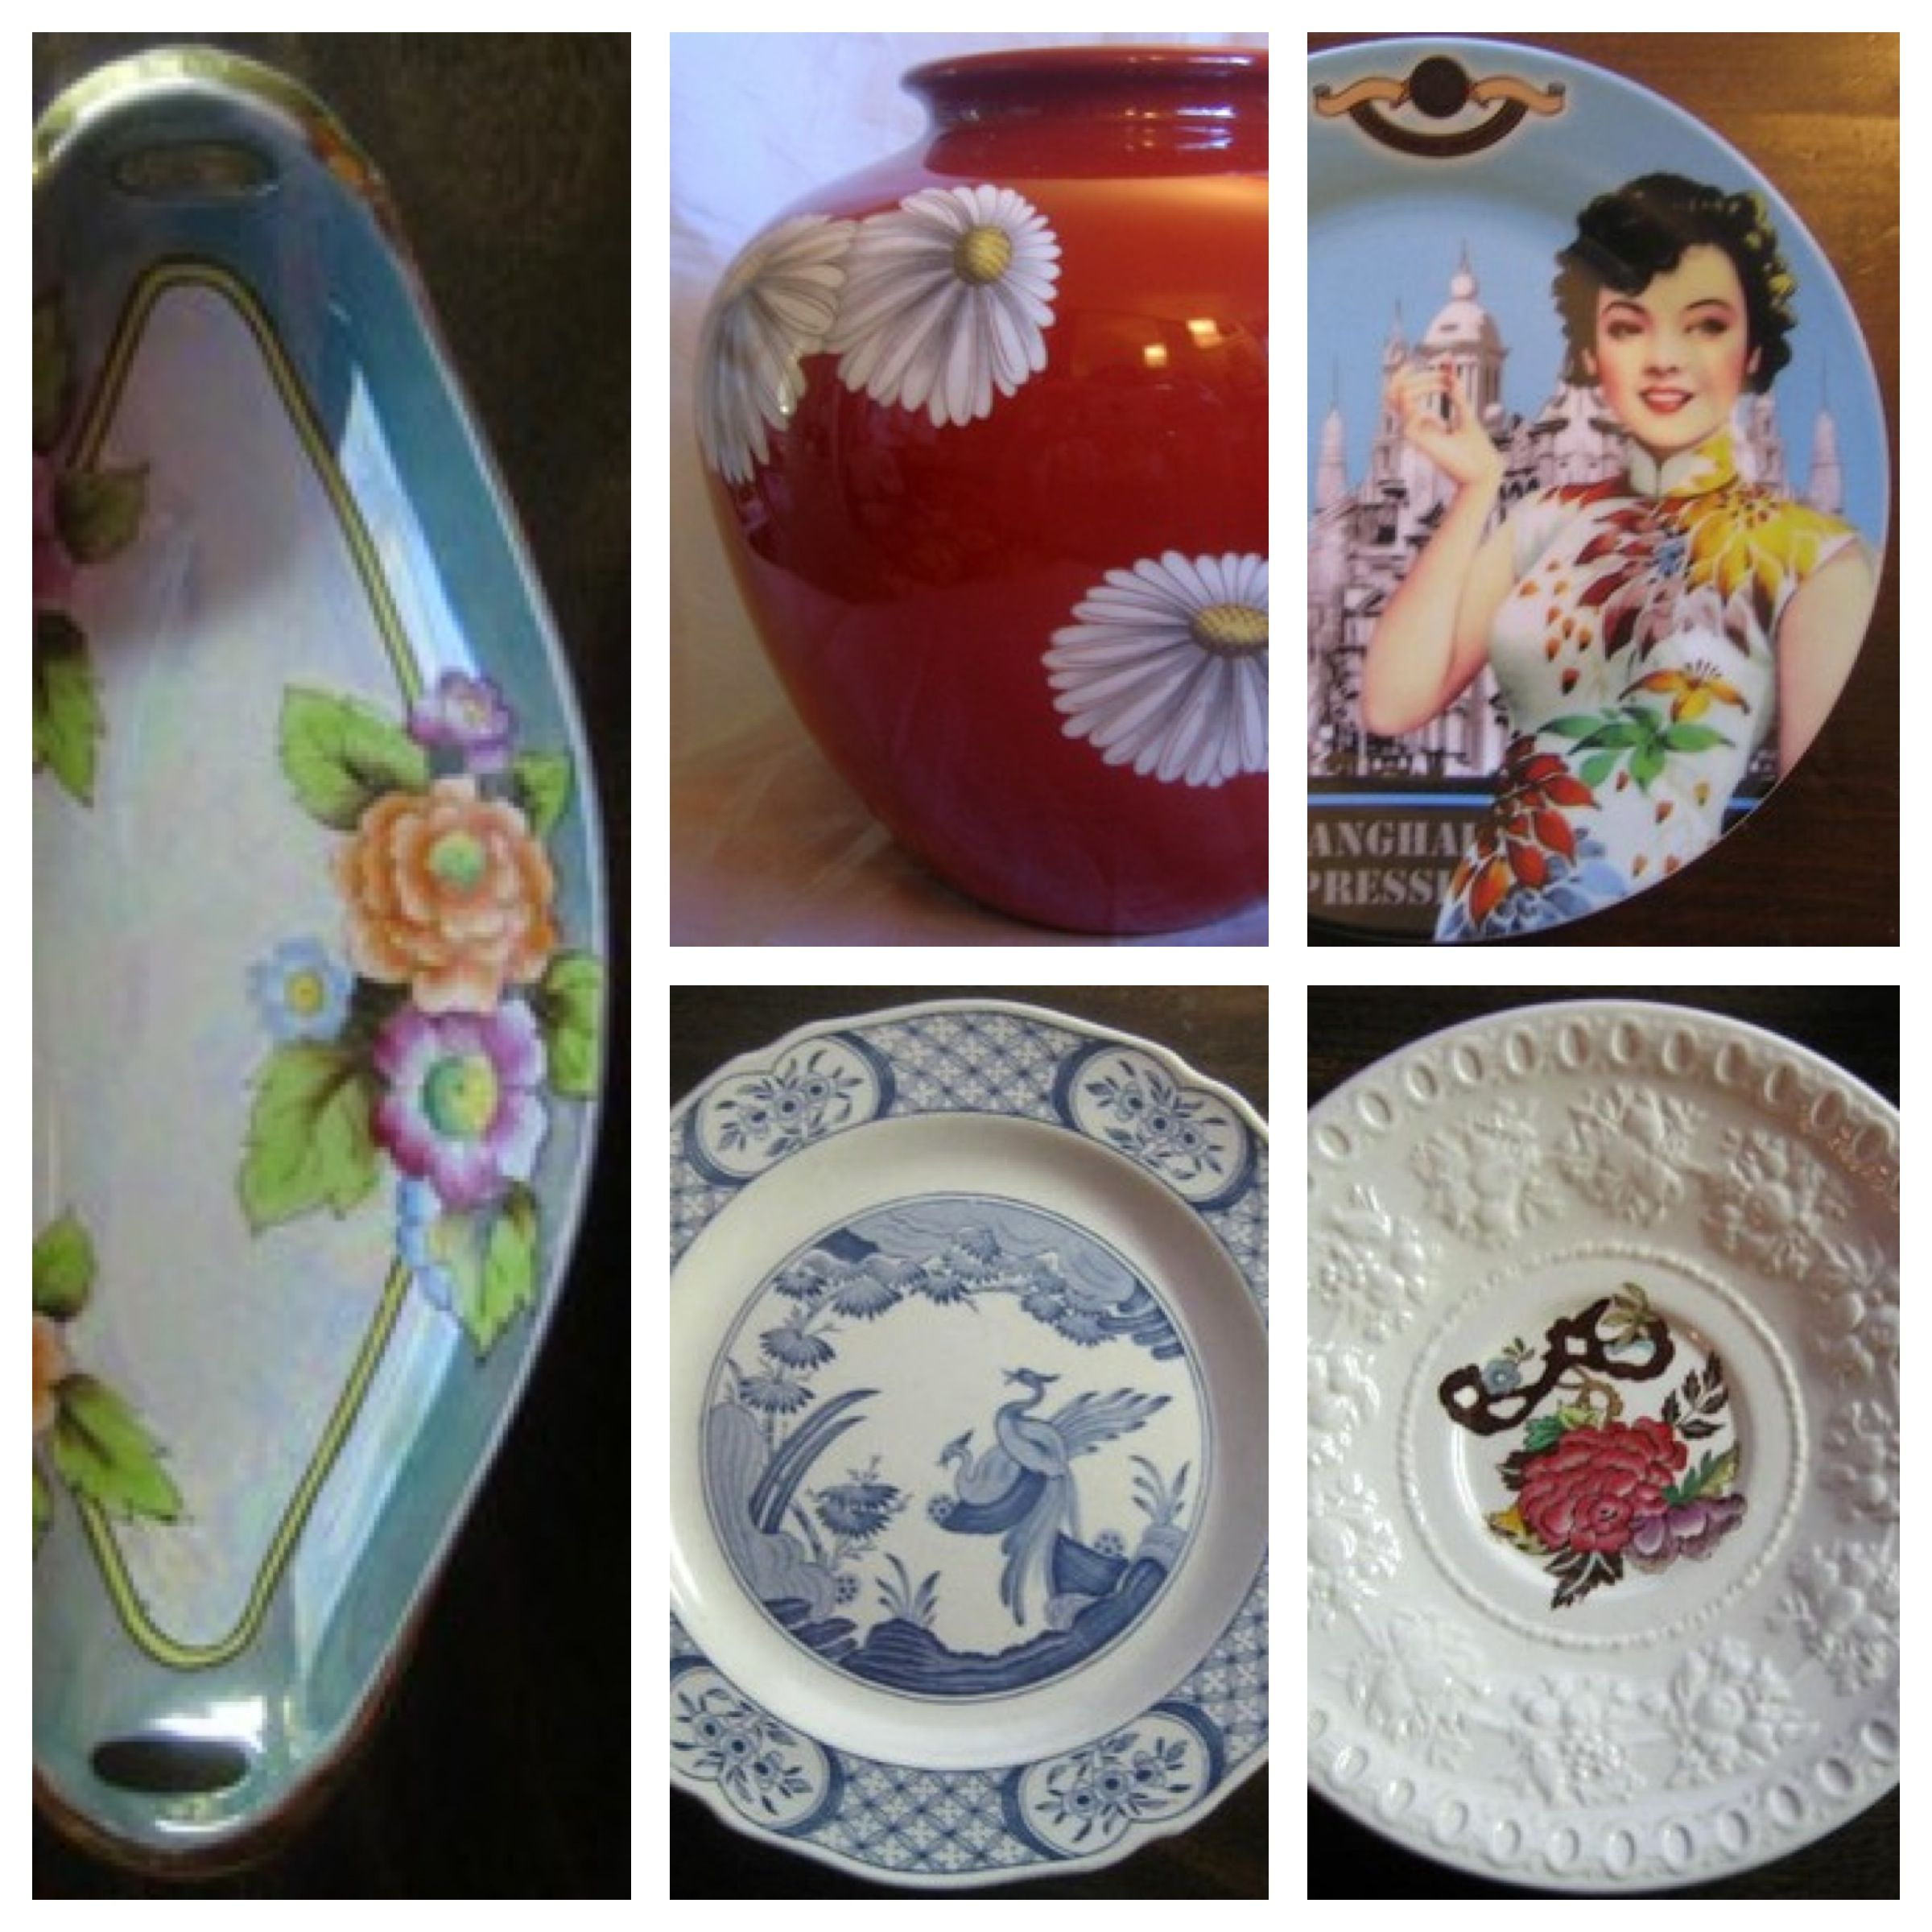 A collage of asian motifs on decorative dishes.